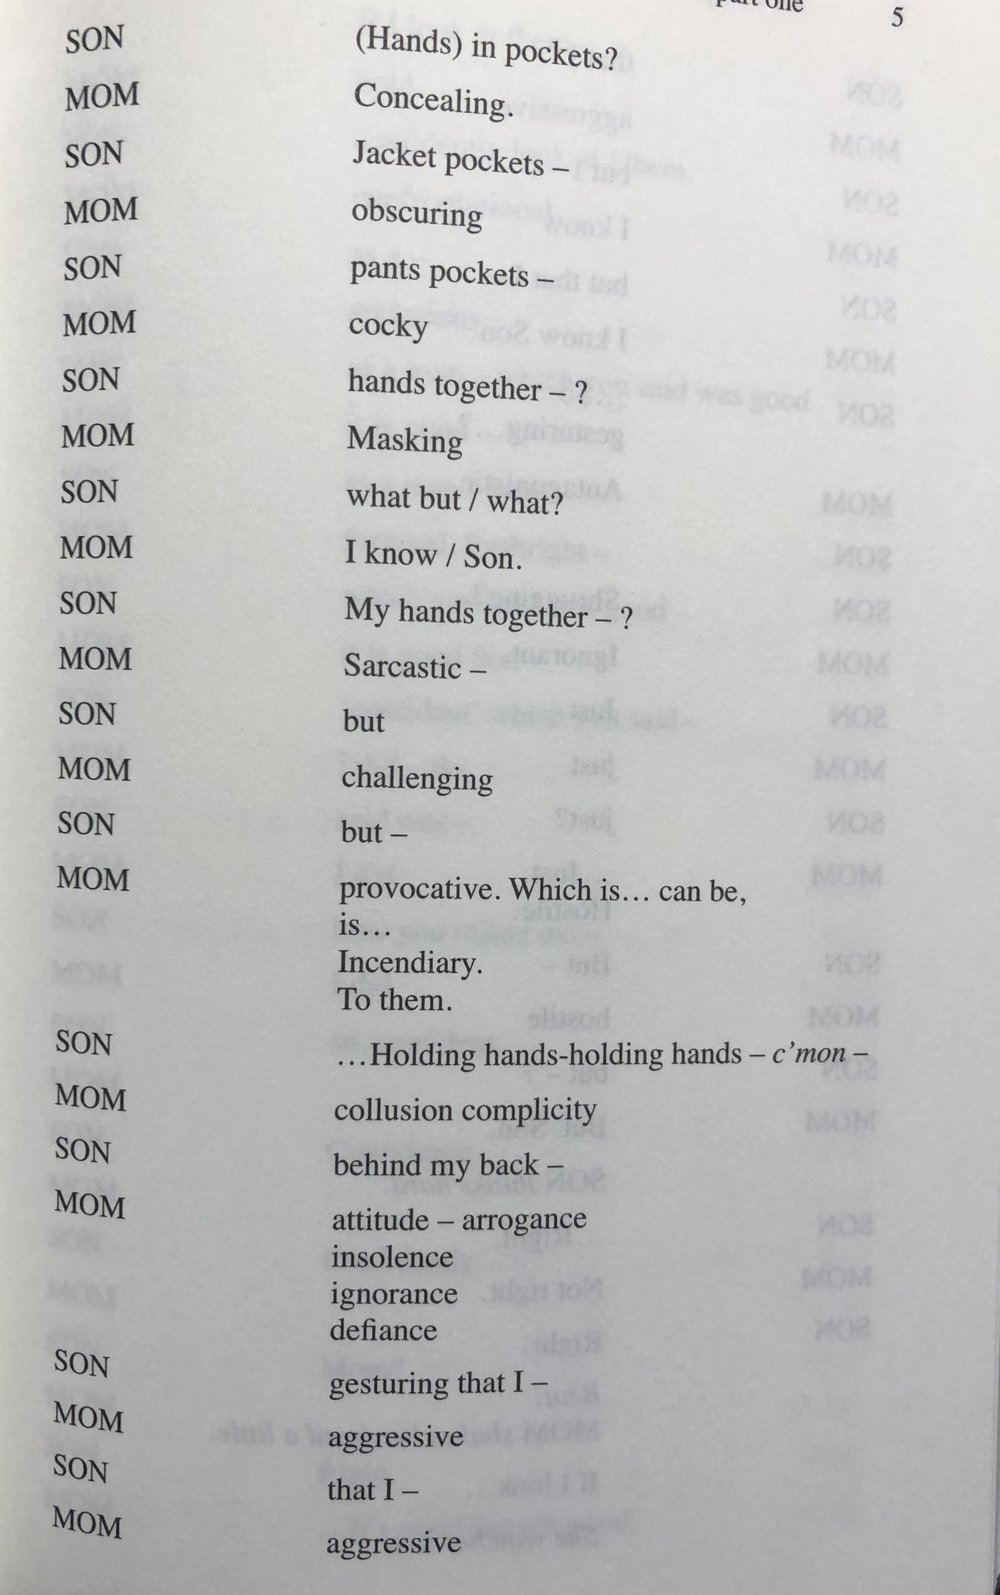 Extract from ear for eye play text, note capital letters, punctutation and form. Words in ( ) are intentions not spoken.